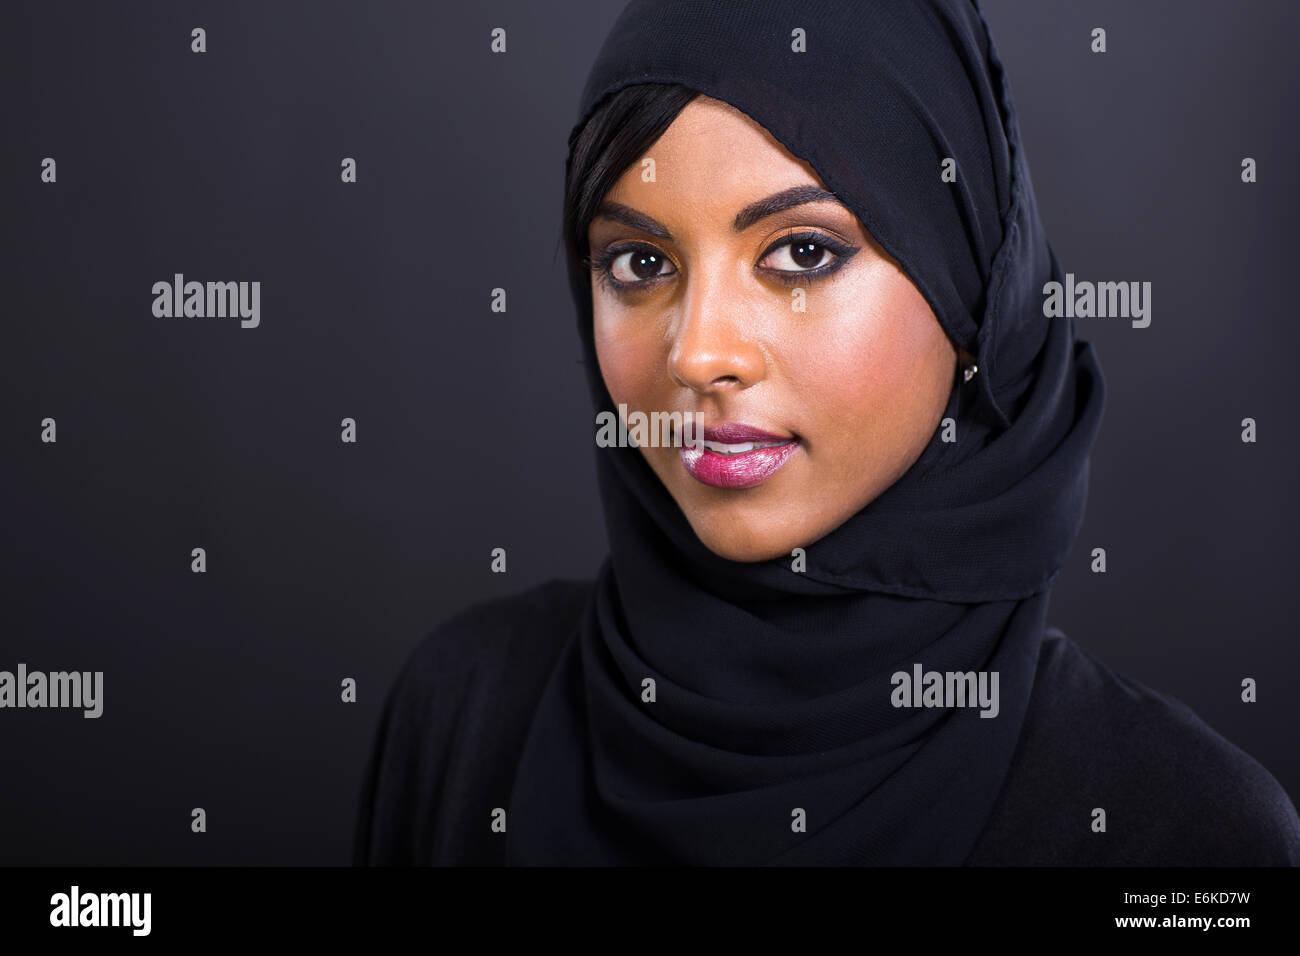 pretty young Muslim woman head shot over black background Stock Photo